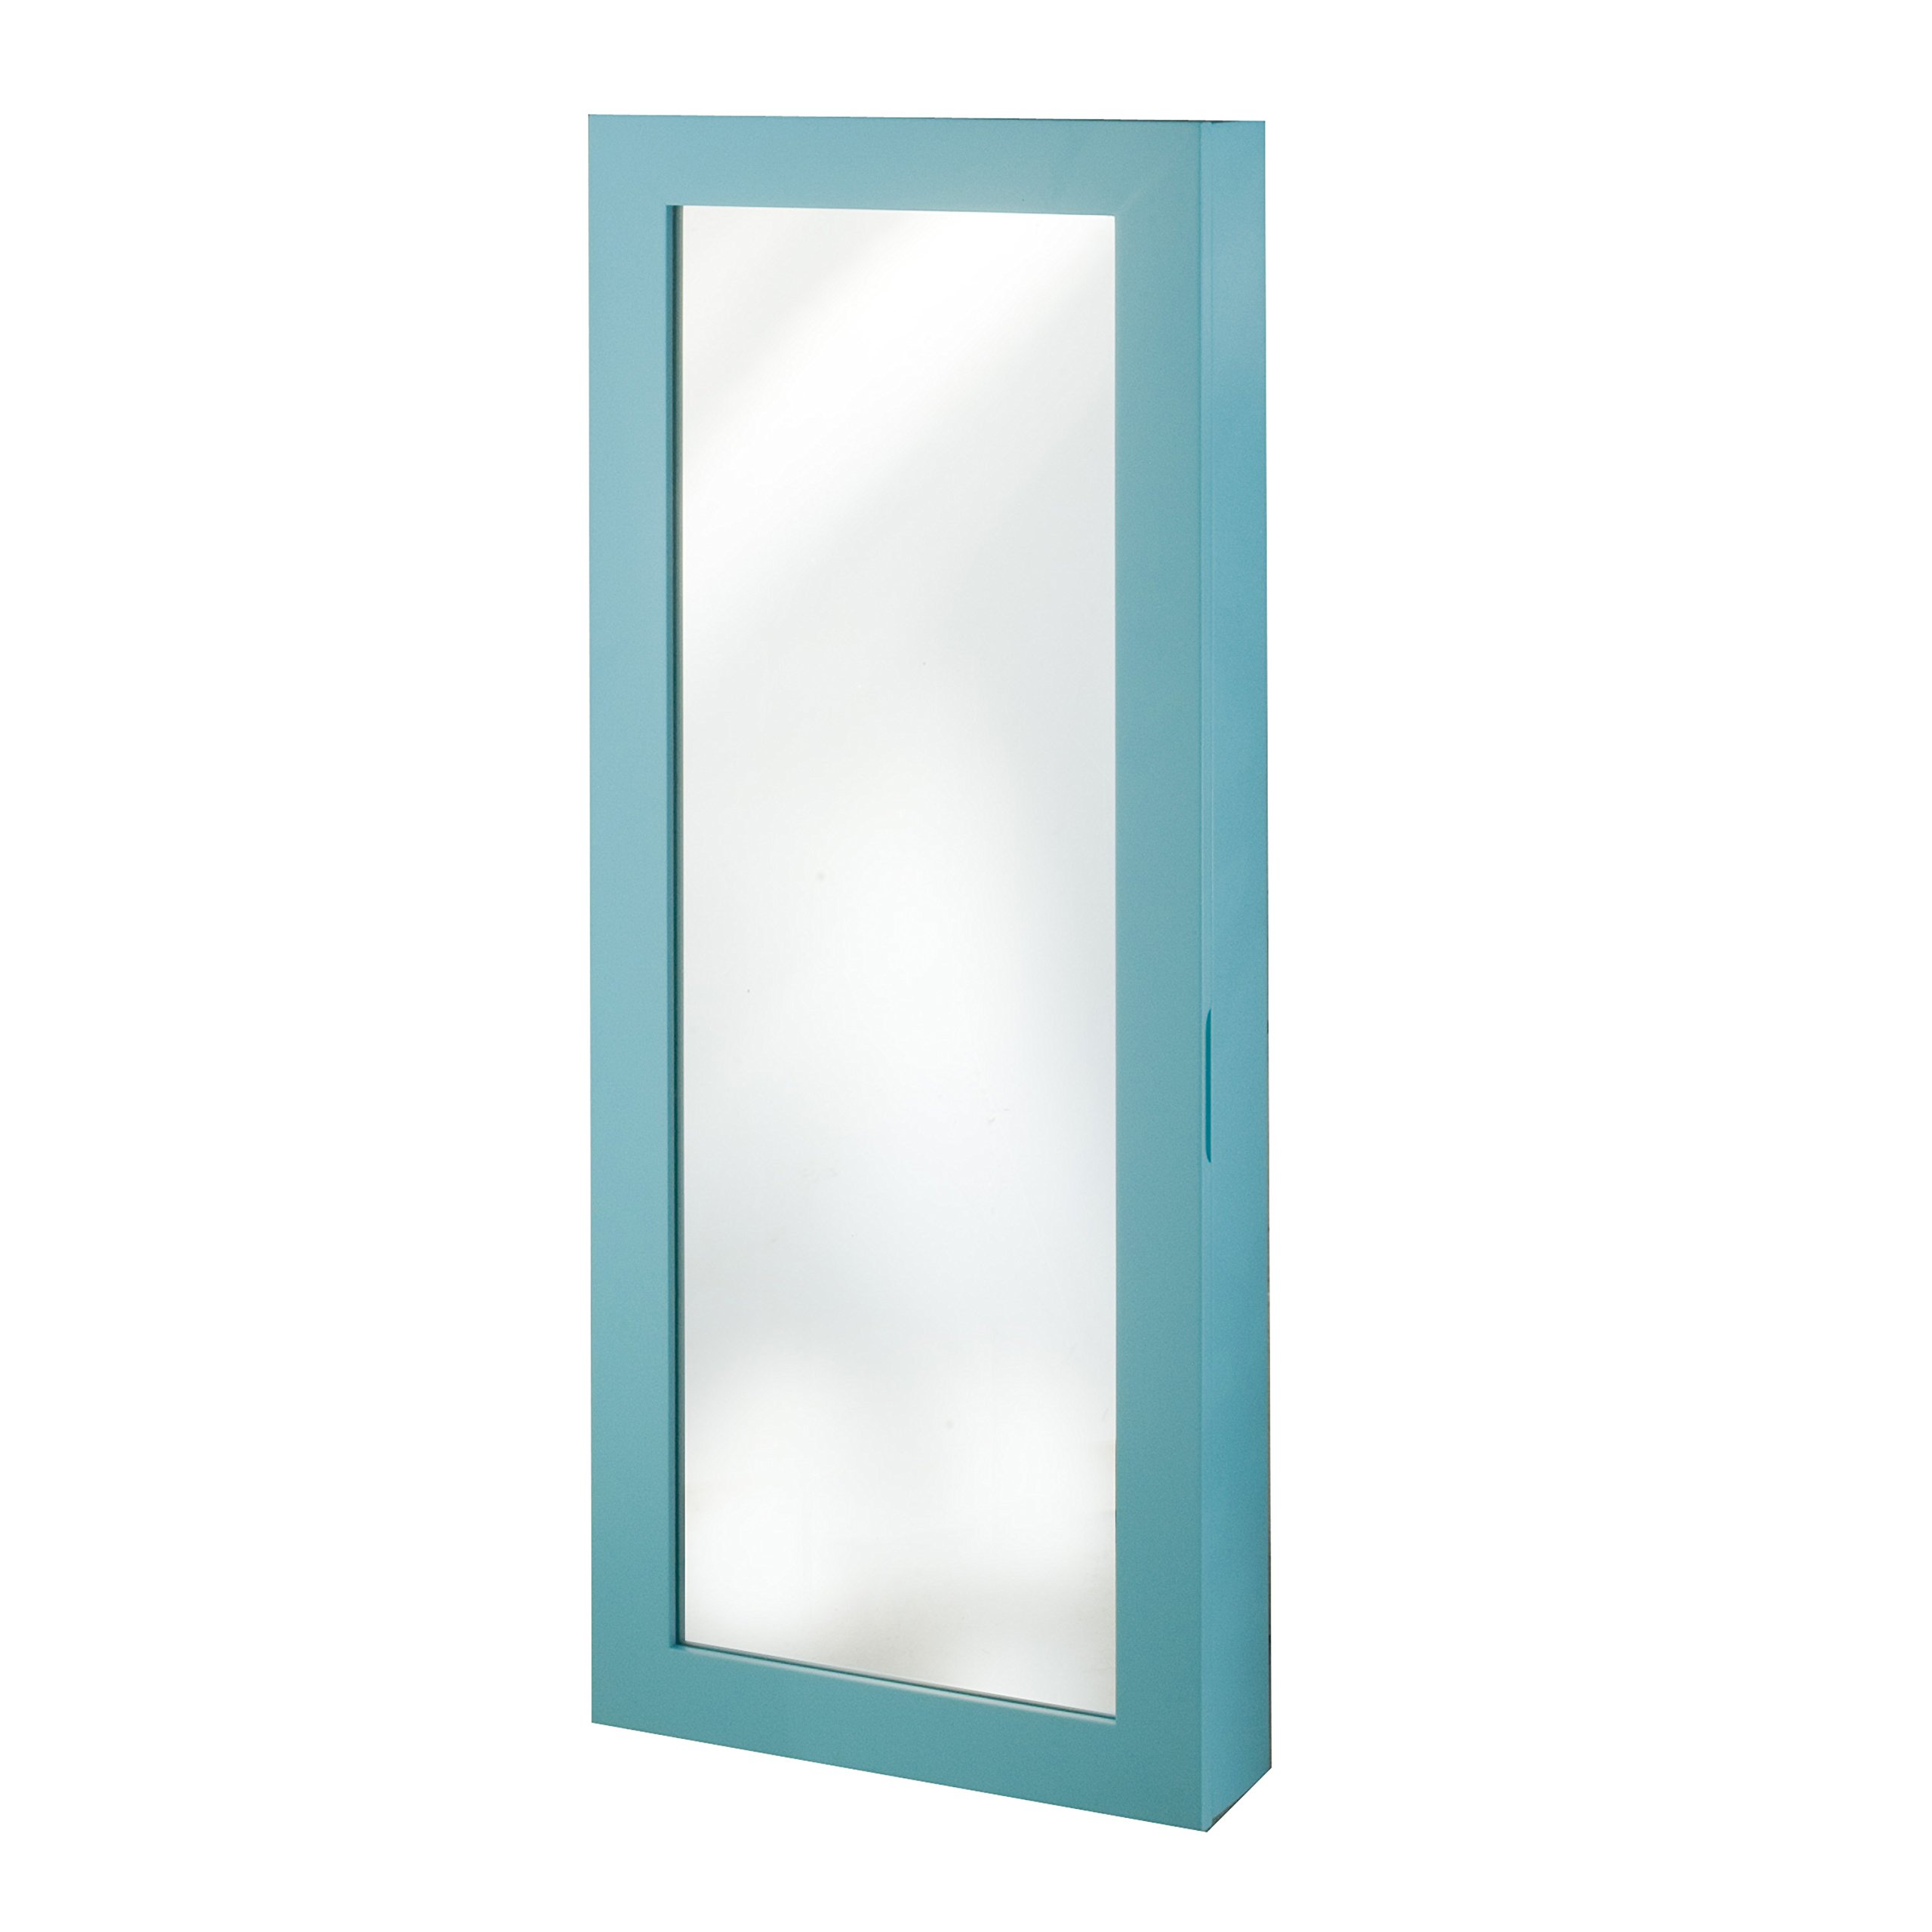 InnerSpace Luxury Products Space Saver Mirrored Jewelry Armoire, Turquoise